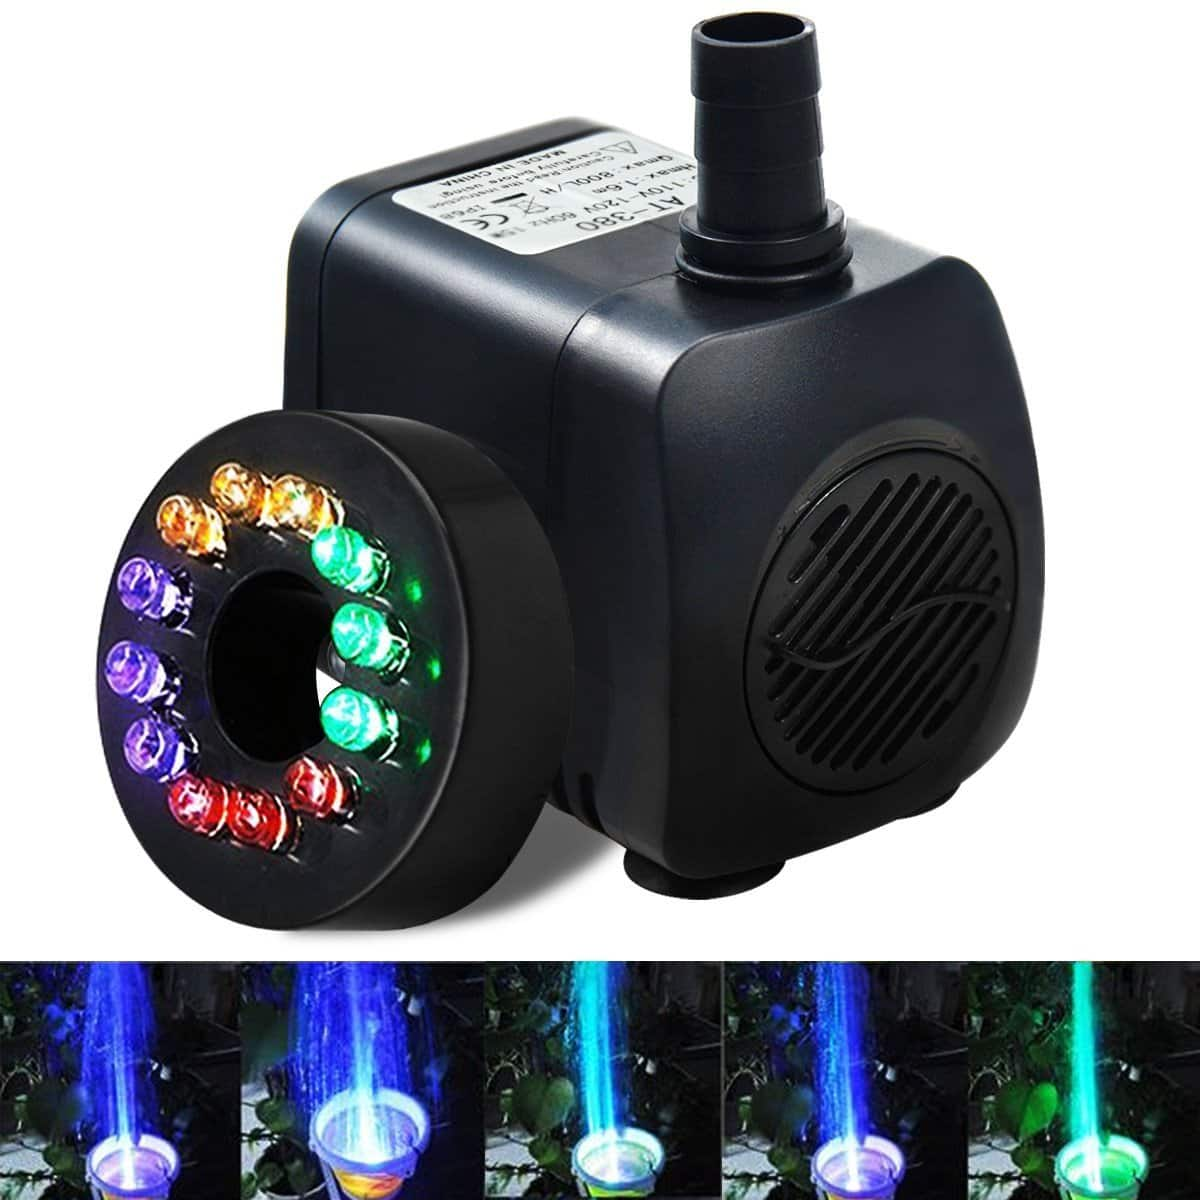 Submersible Water Pump with Multicolored LED Lighting for Fountains, Aquariums, Ponds $8.33 AC FS w/ Prime